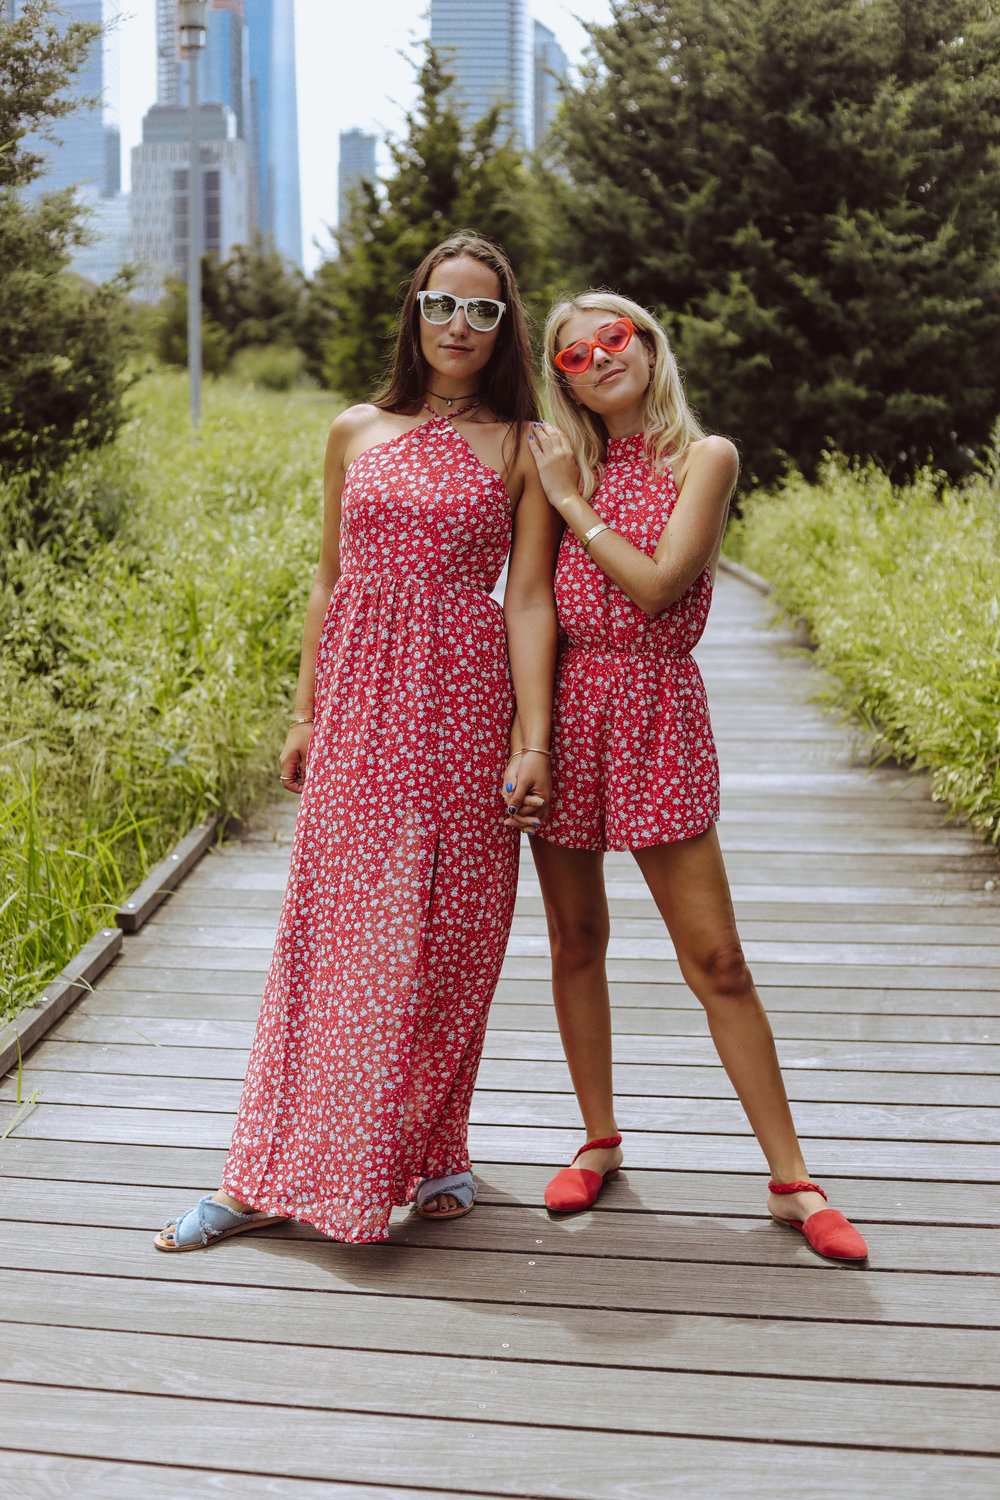 SOPHIE AND CHARLOTTE BICKLEY YIN 2MY YANG SISTER FASHION BLOGGERS NYC TOBI POST